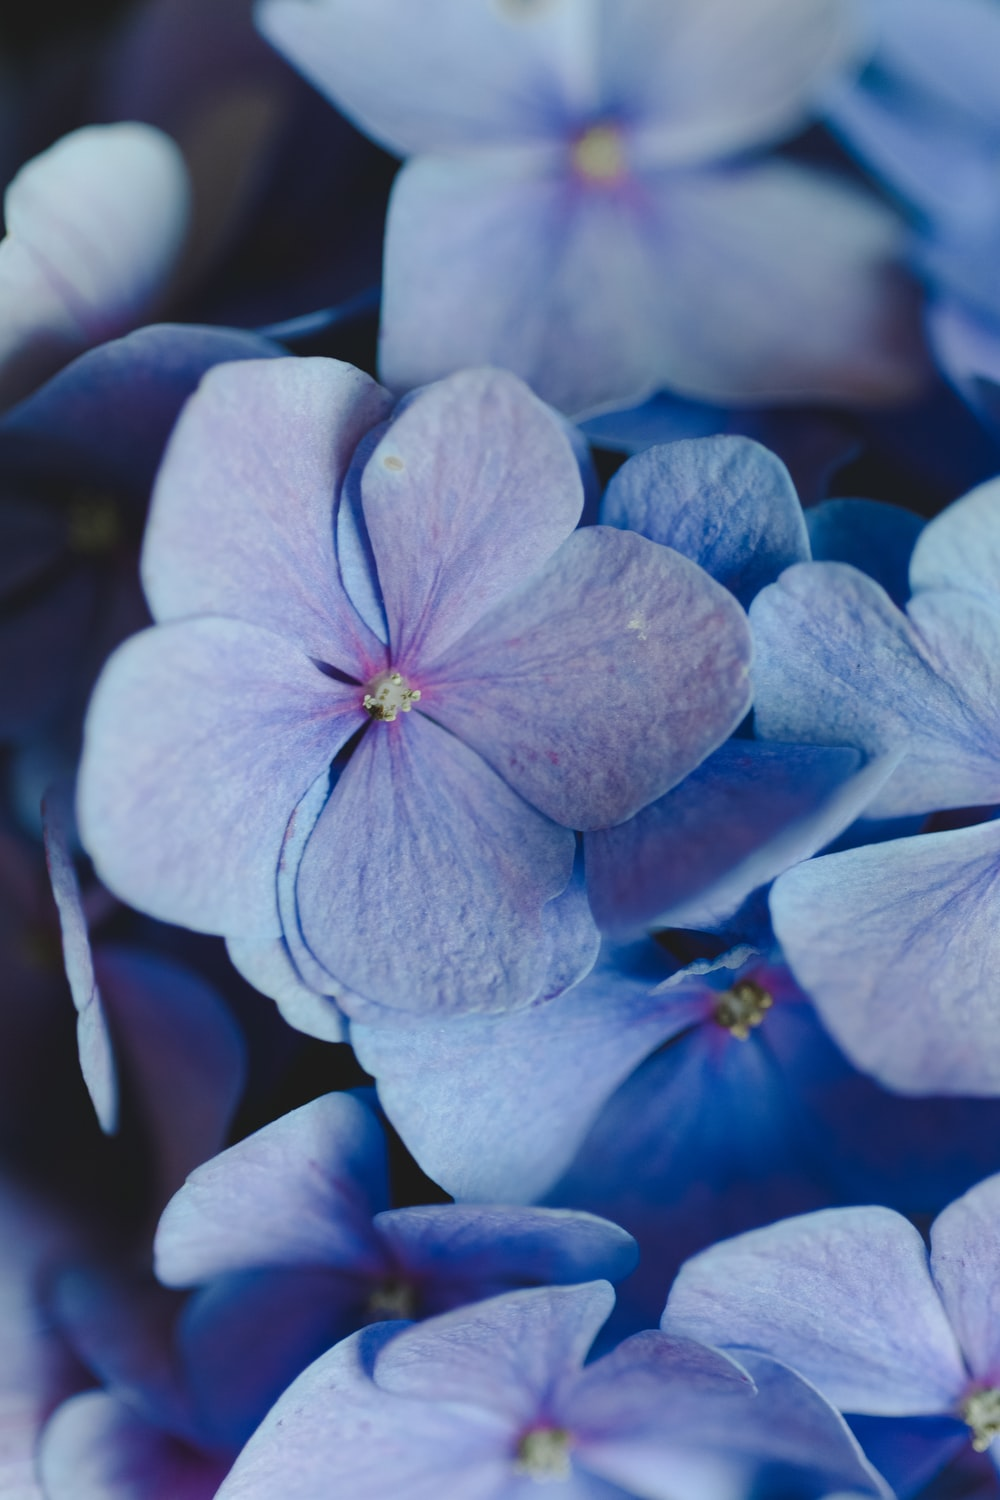 Violet Pictures Download Free Images On Unsplash